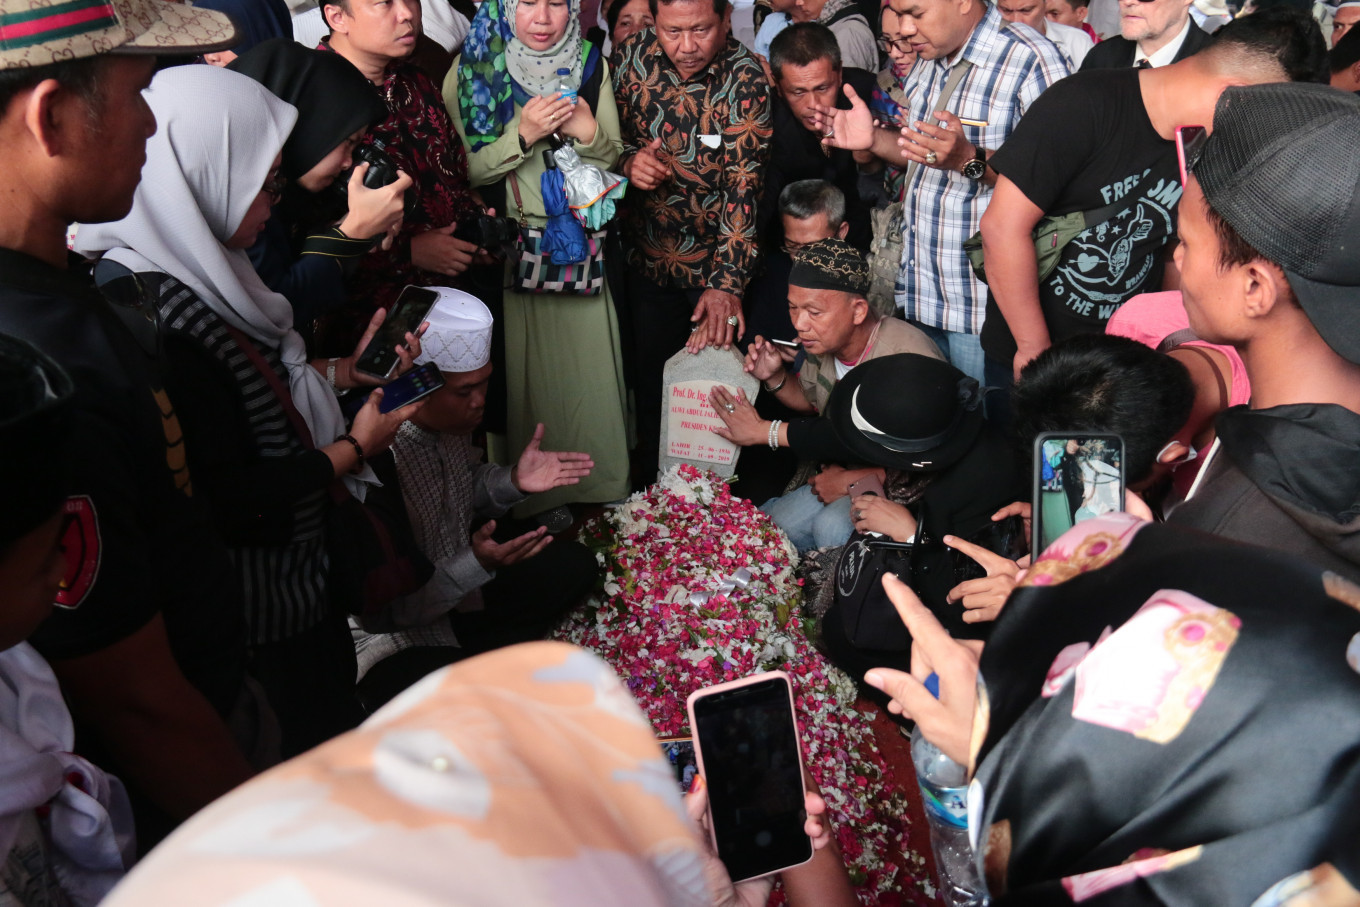 The public pay their respects to Indonesia's third president BJ Habibie at the Kalibata Heroes Cemetery in South Jakarta on Thursday, September 12, 2019. JP/Rafaela Chandra